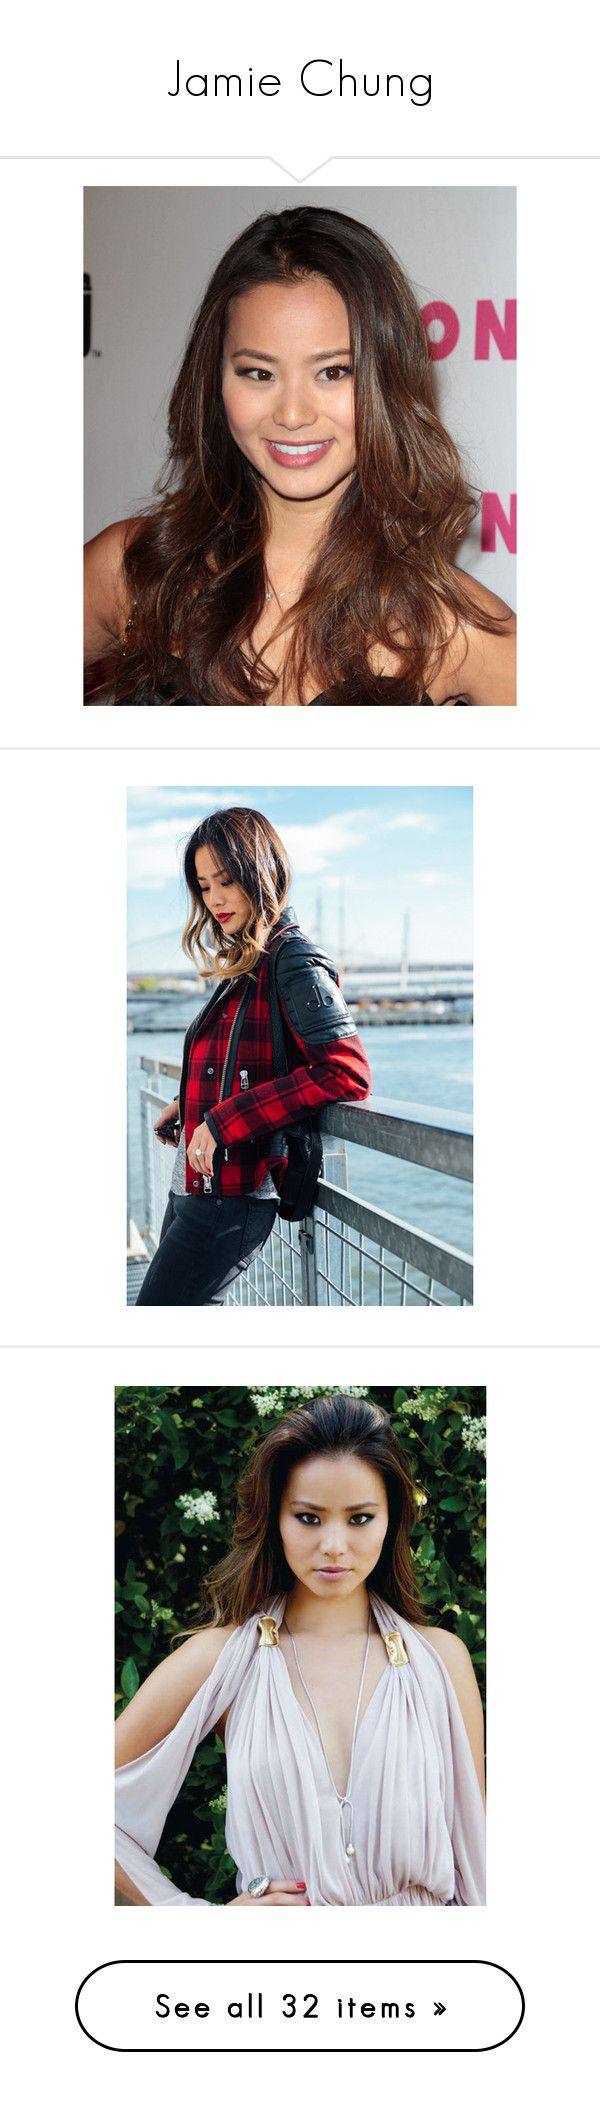 """Jamie Chung"" by anjinha1267 on Polyvore featuring jamie chung, people, female models e sucker punch"